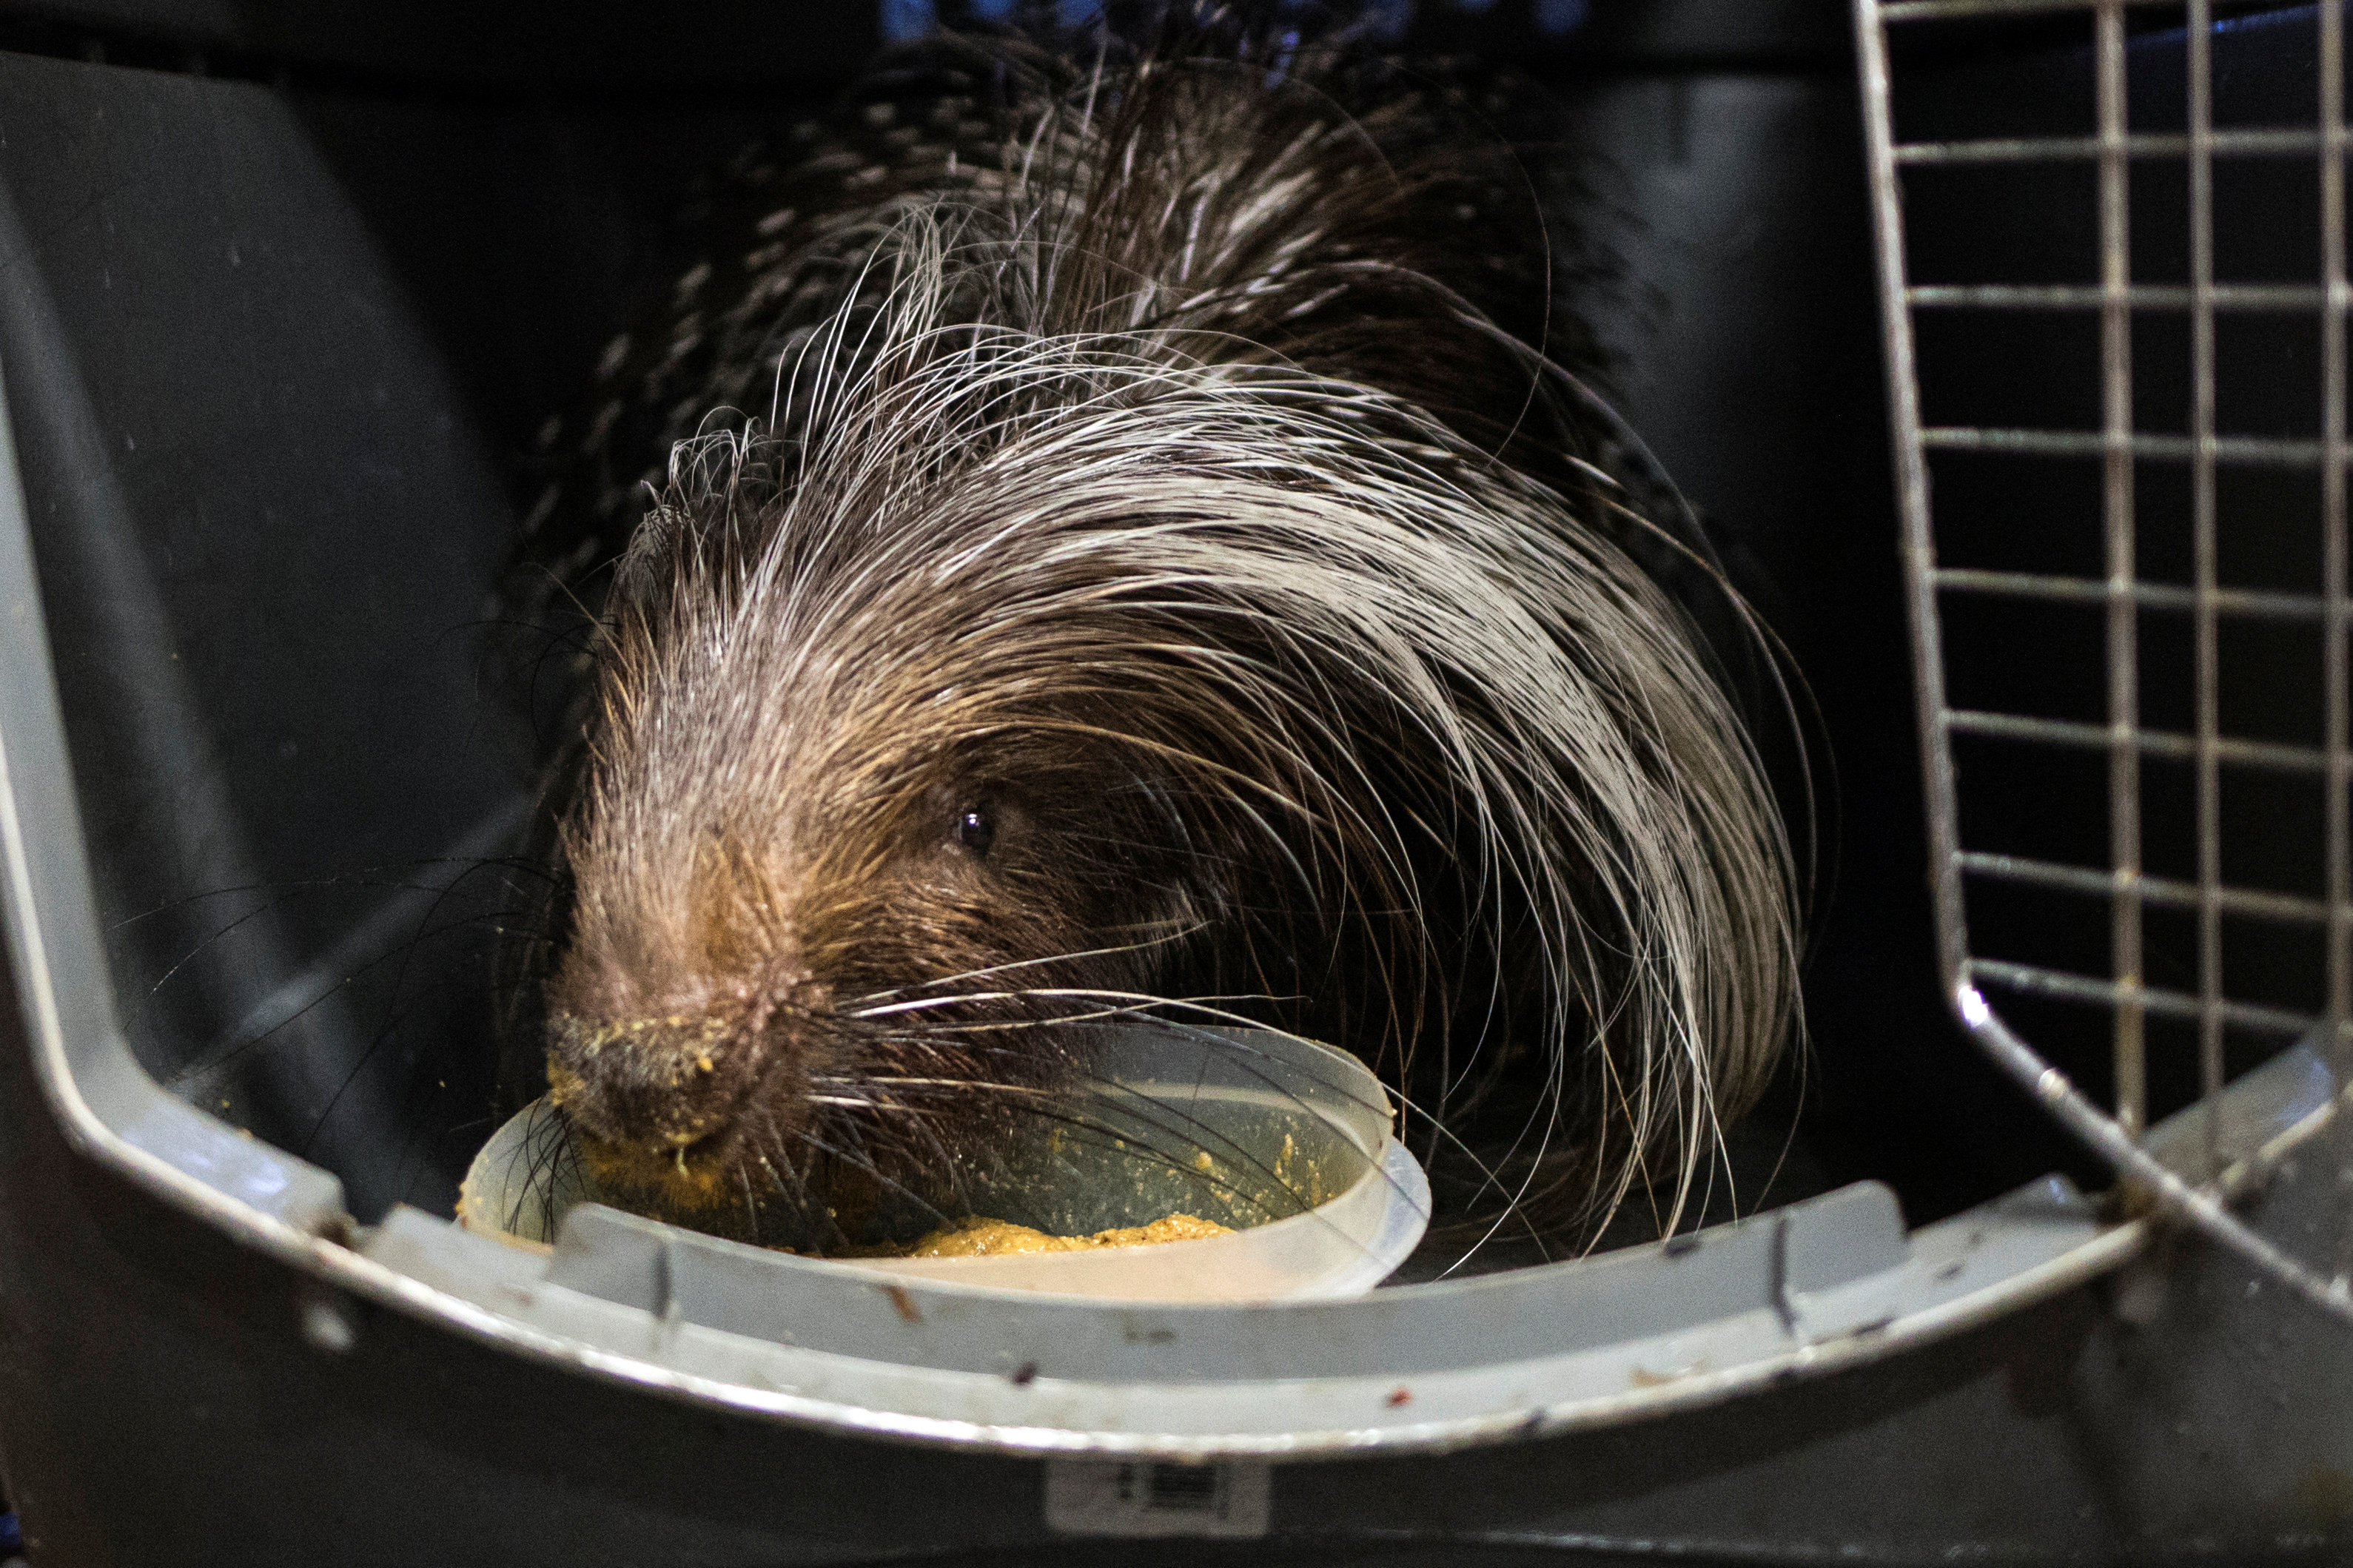 An African crested porcupine is moved into a shelter ahead of the downfall of Hurricane Irma at the zoo in Miami, Florida, U.S. September 9, 2017.  REUTERS/Adrees Latif